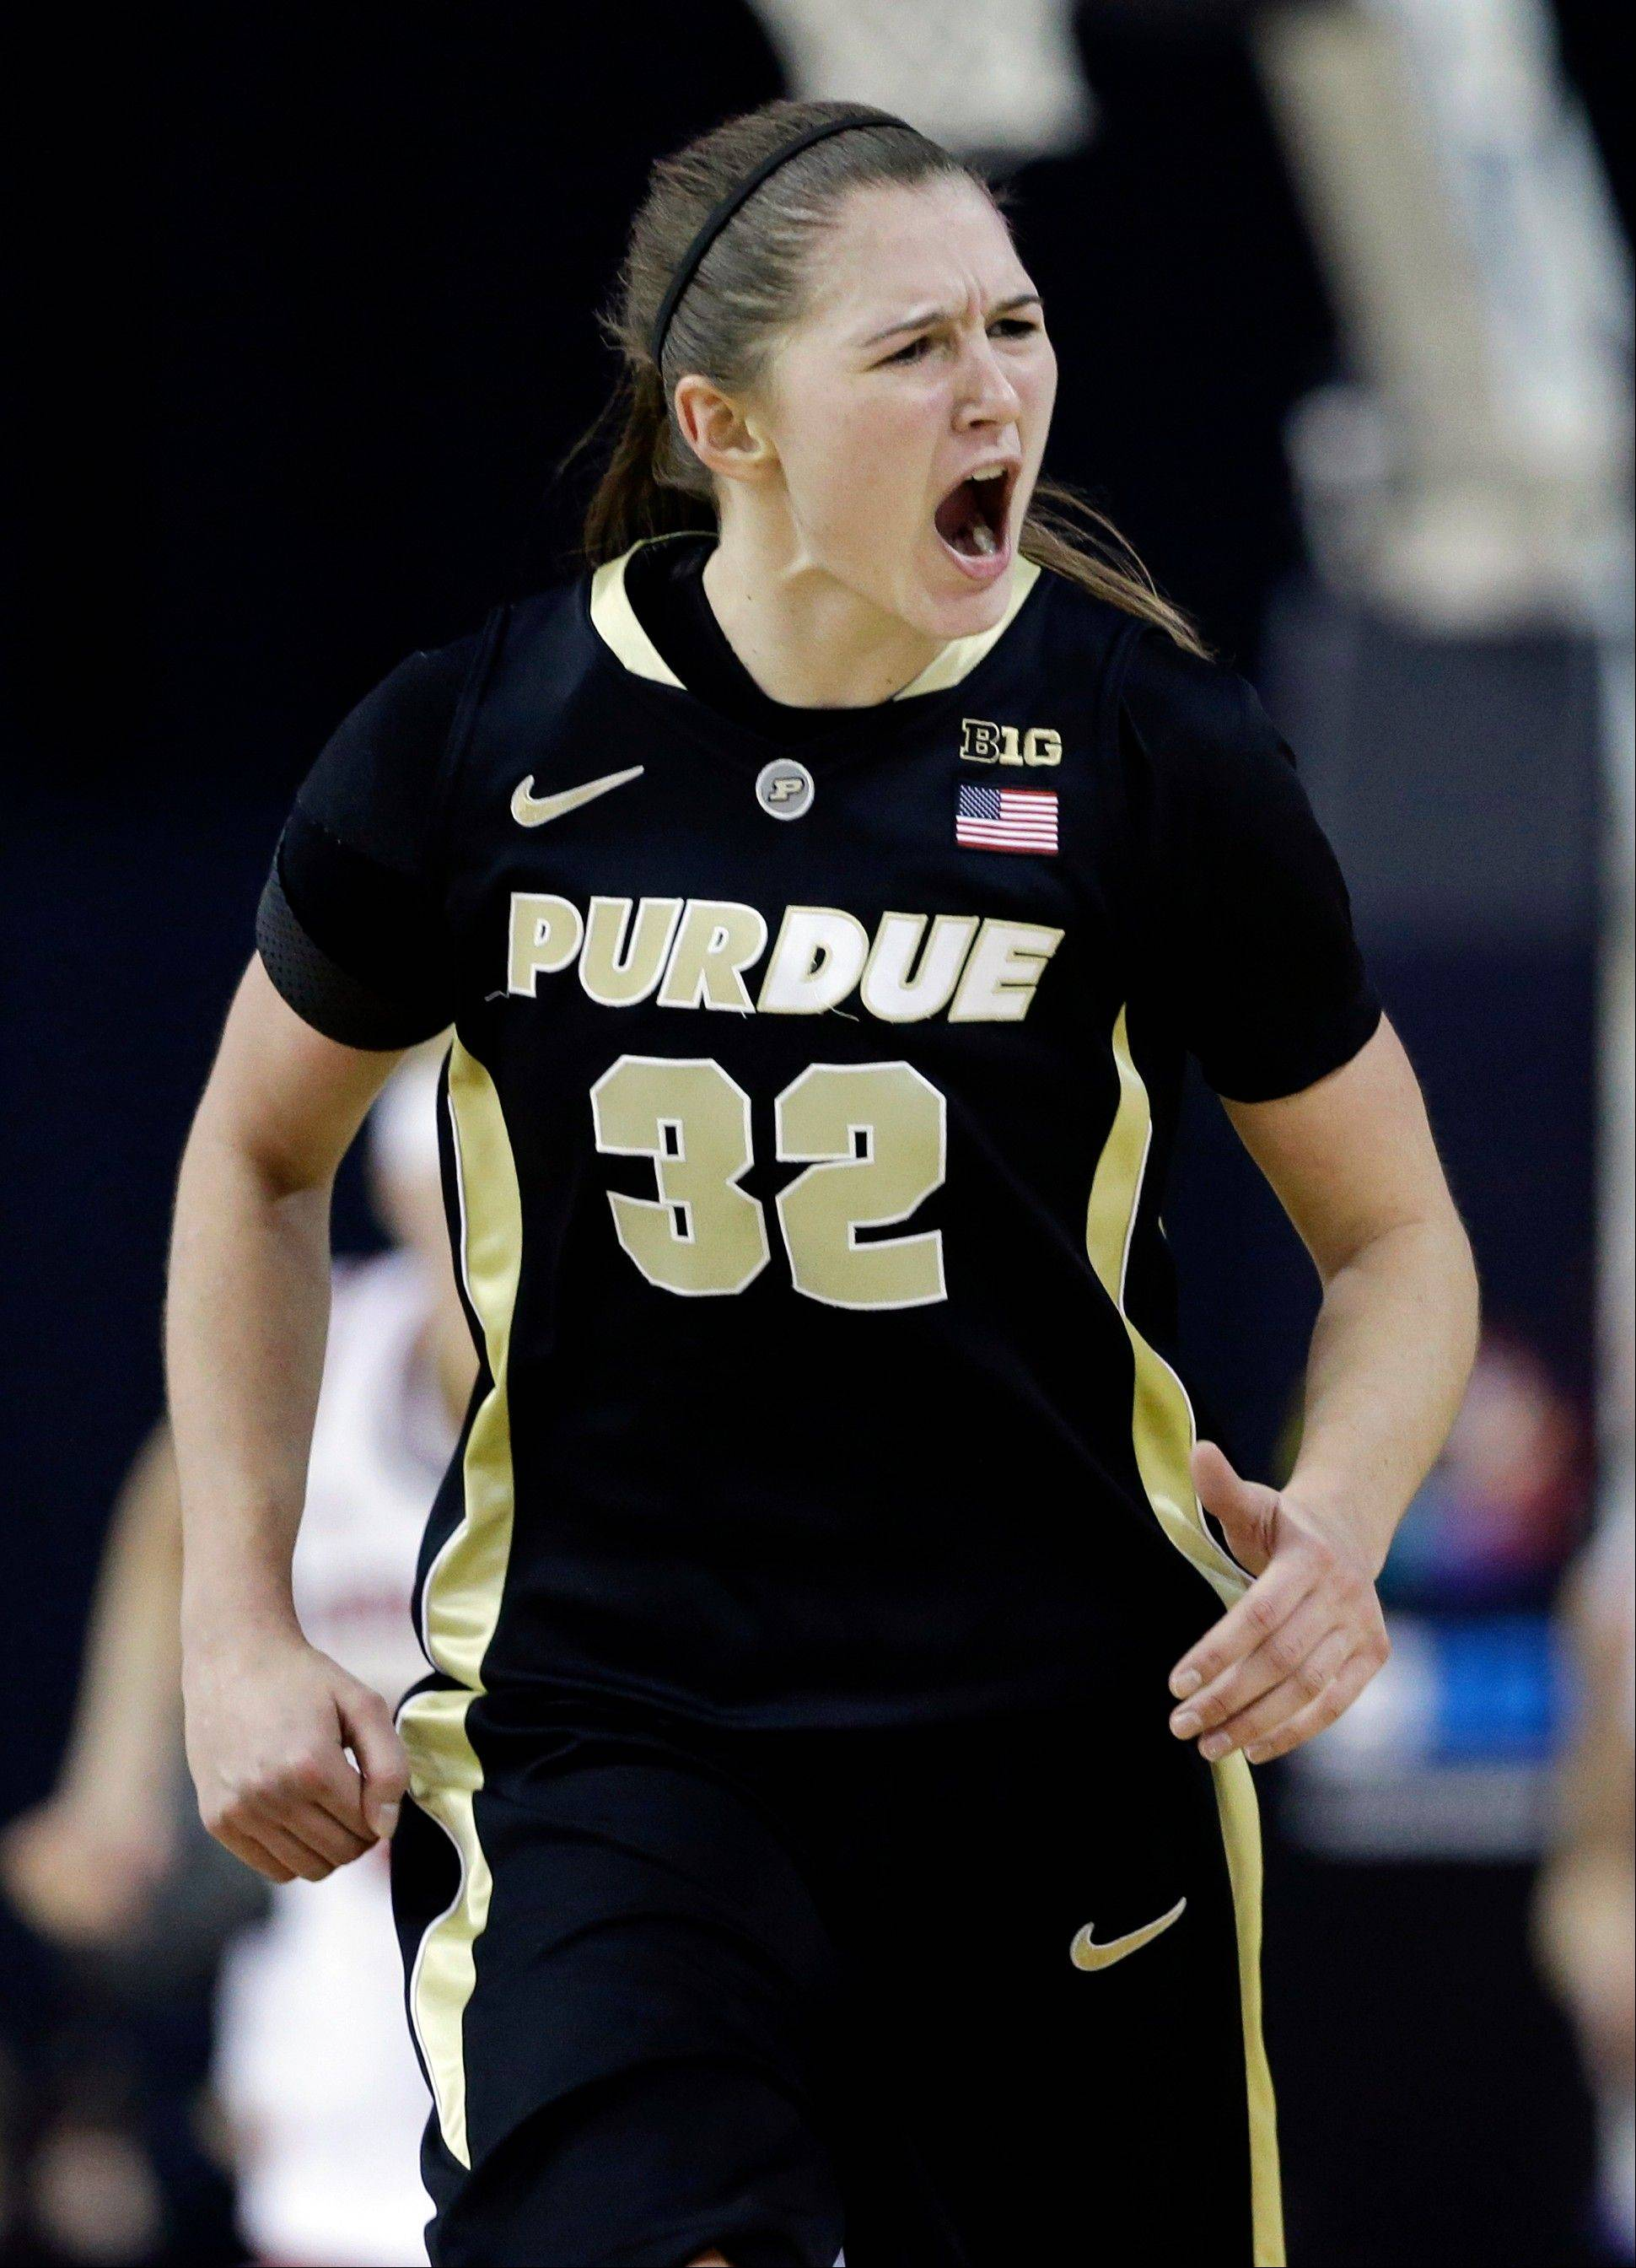 Purdue's tough D helps take down Nebraska